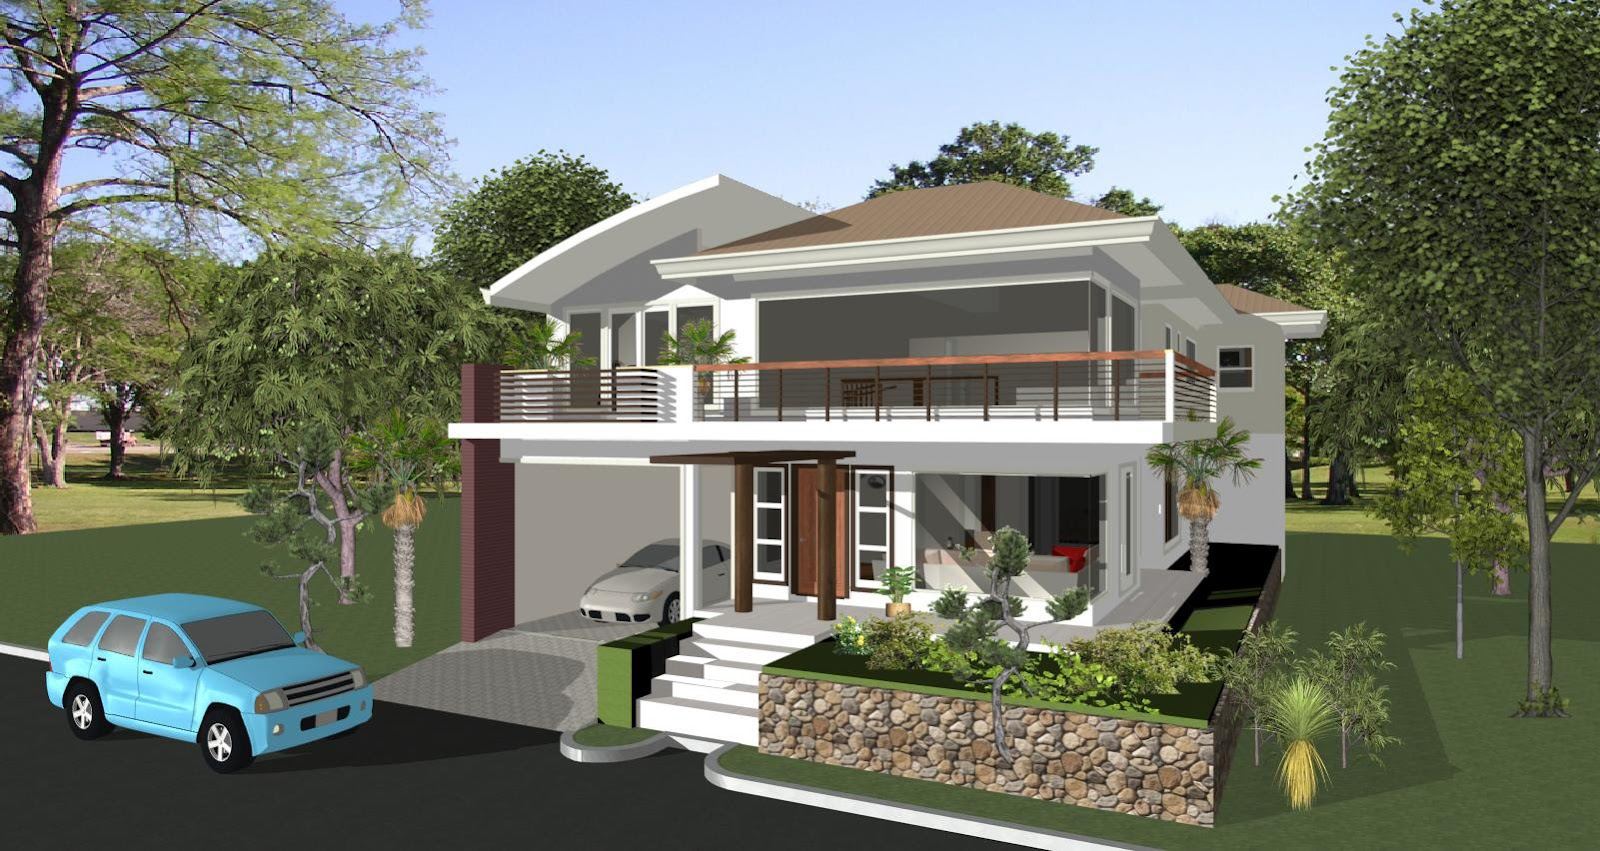 architecture elevated house designs willow park homes house home design architectural rendering civil